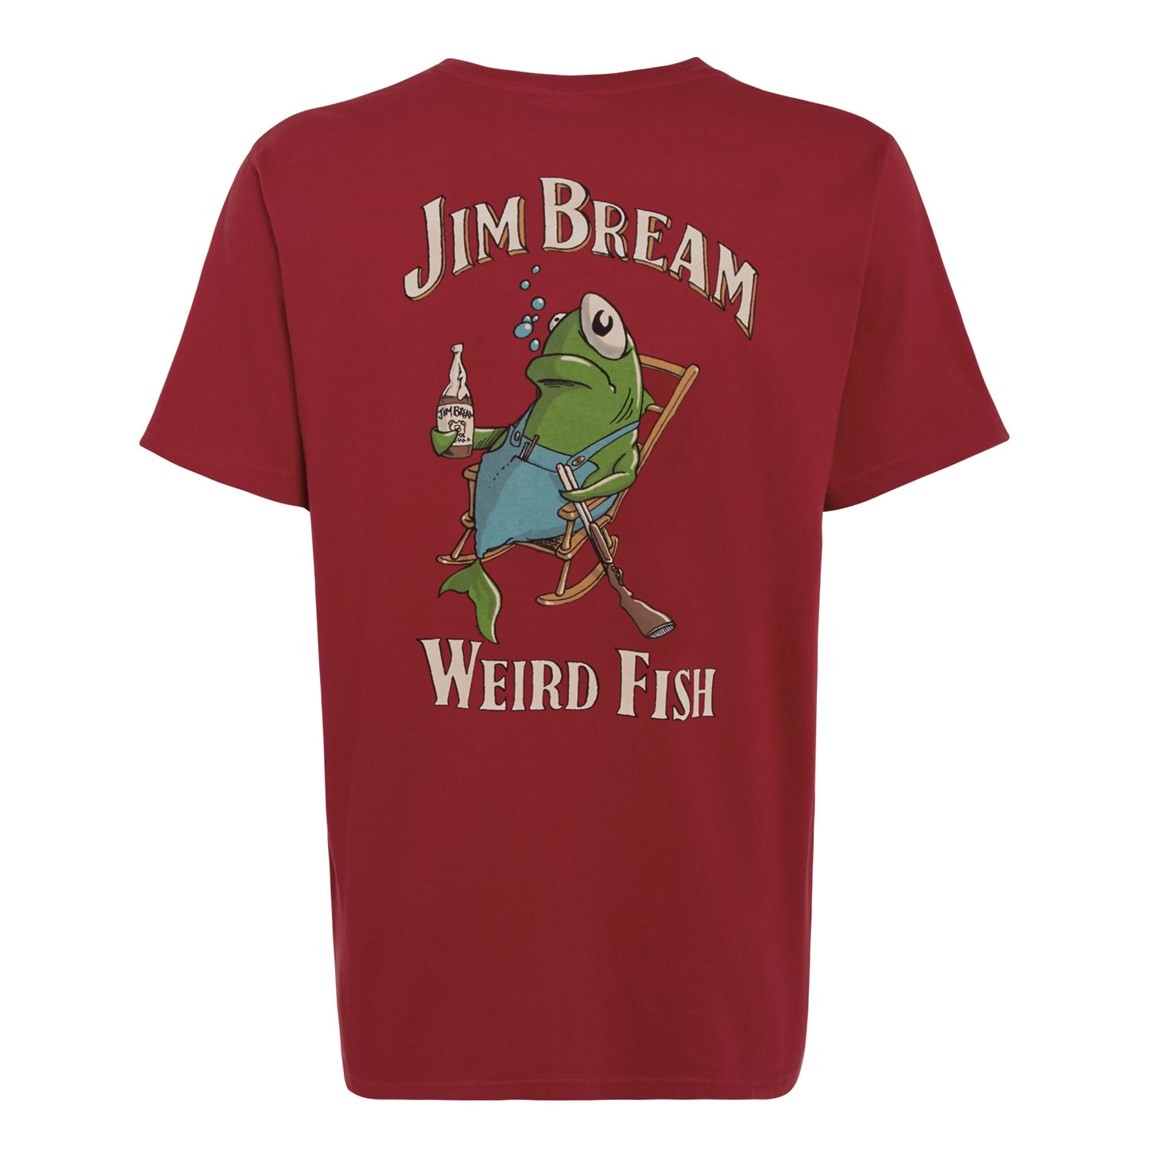 Weird Fish Jim Bream Printed Artist T-Shirt Jester Red